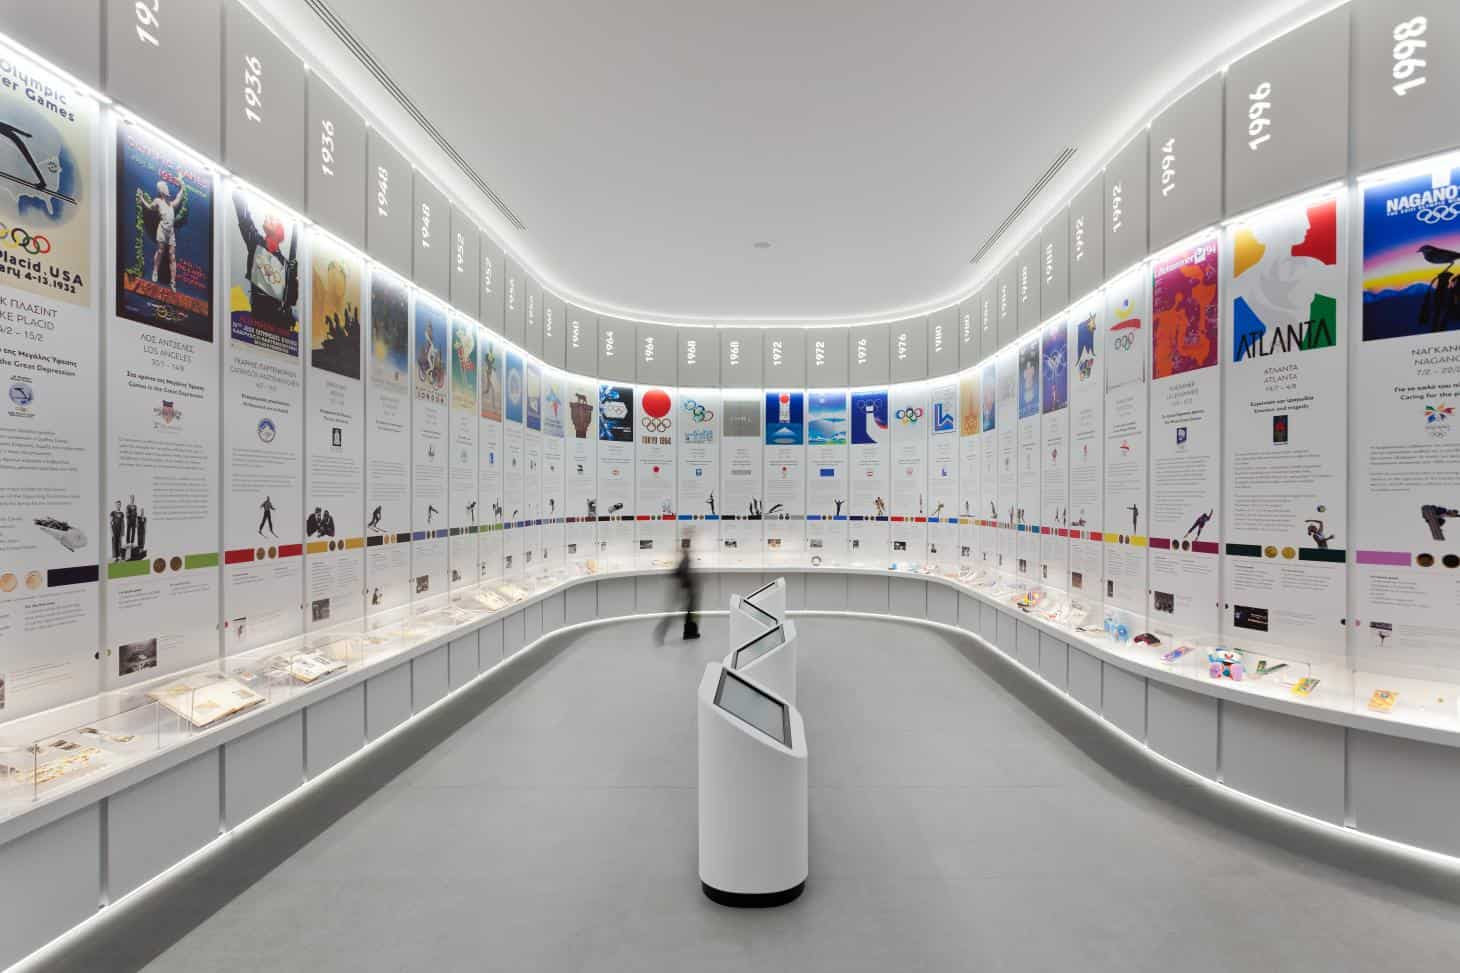 Athens Olympic Museum set to open on Friday in Golden Hall shopping mall 5